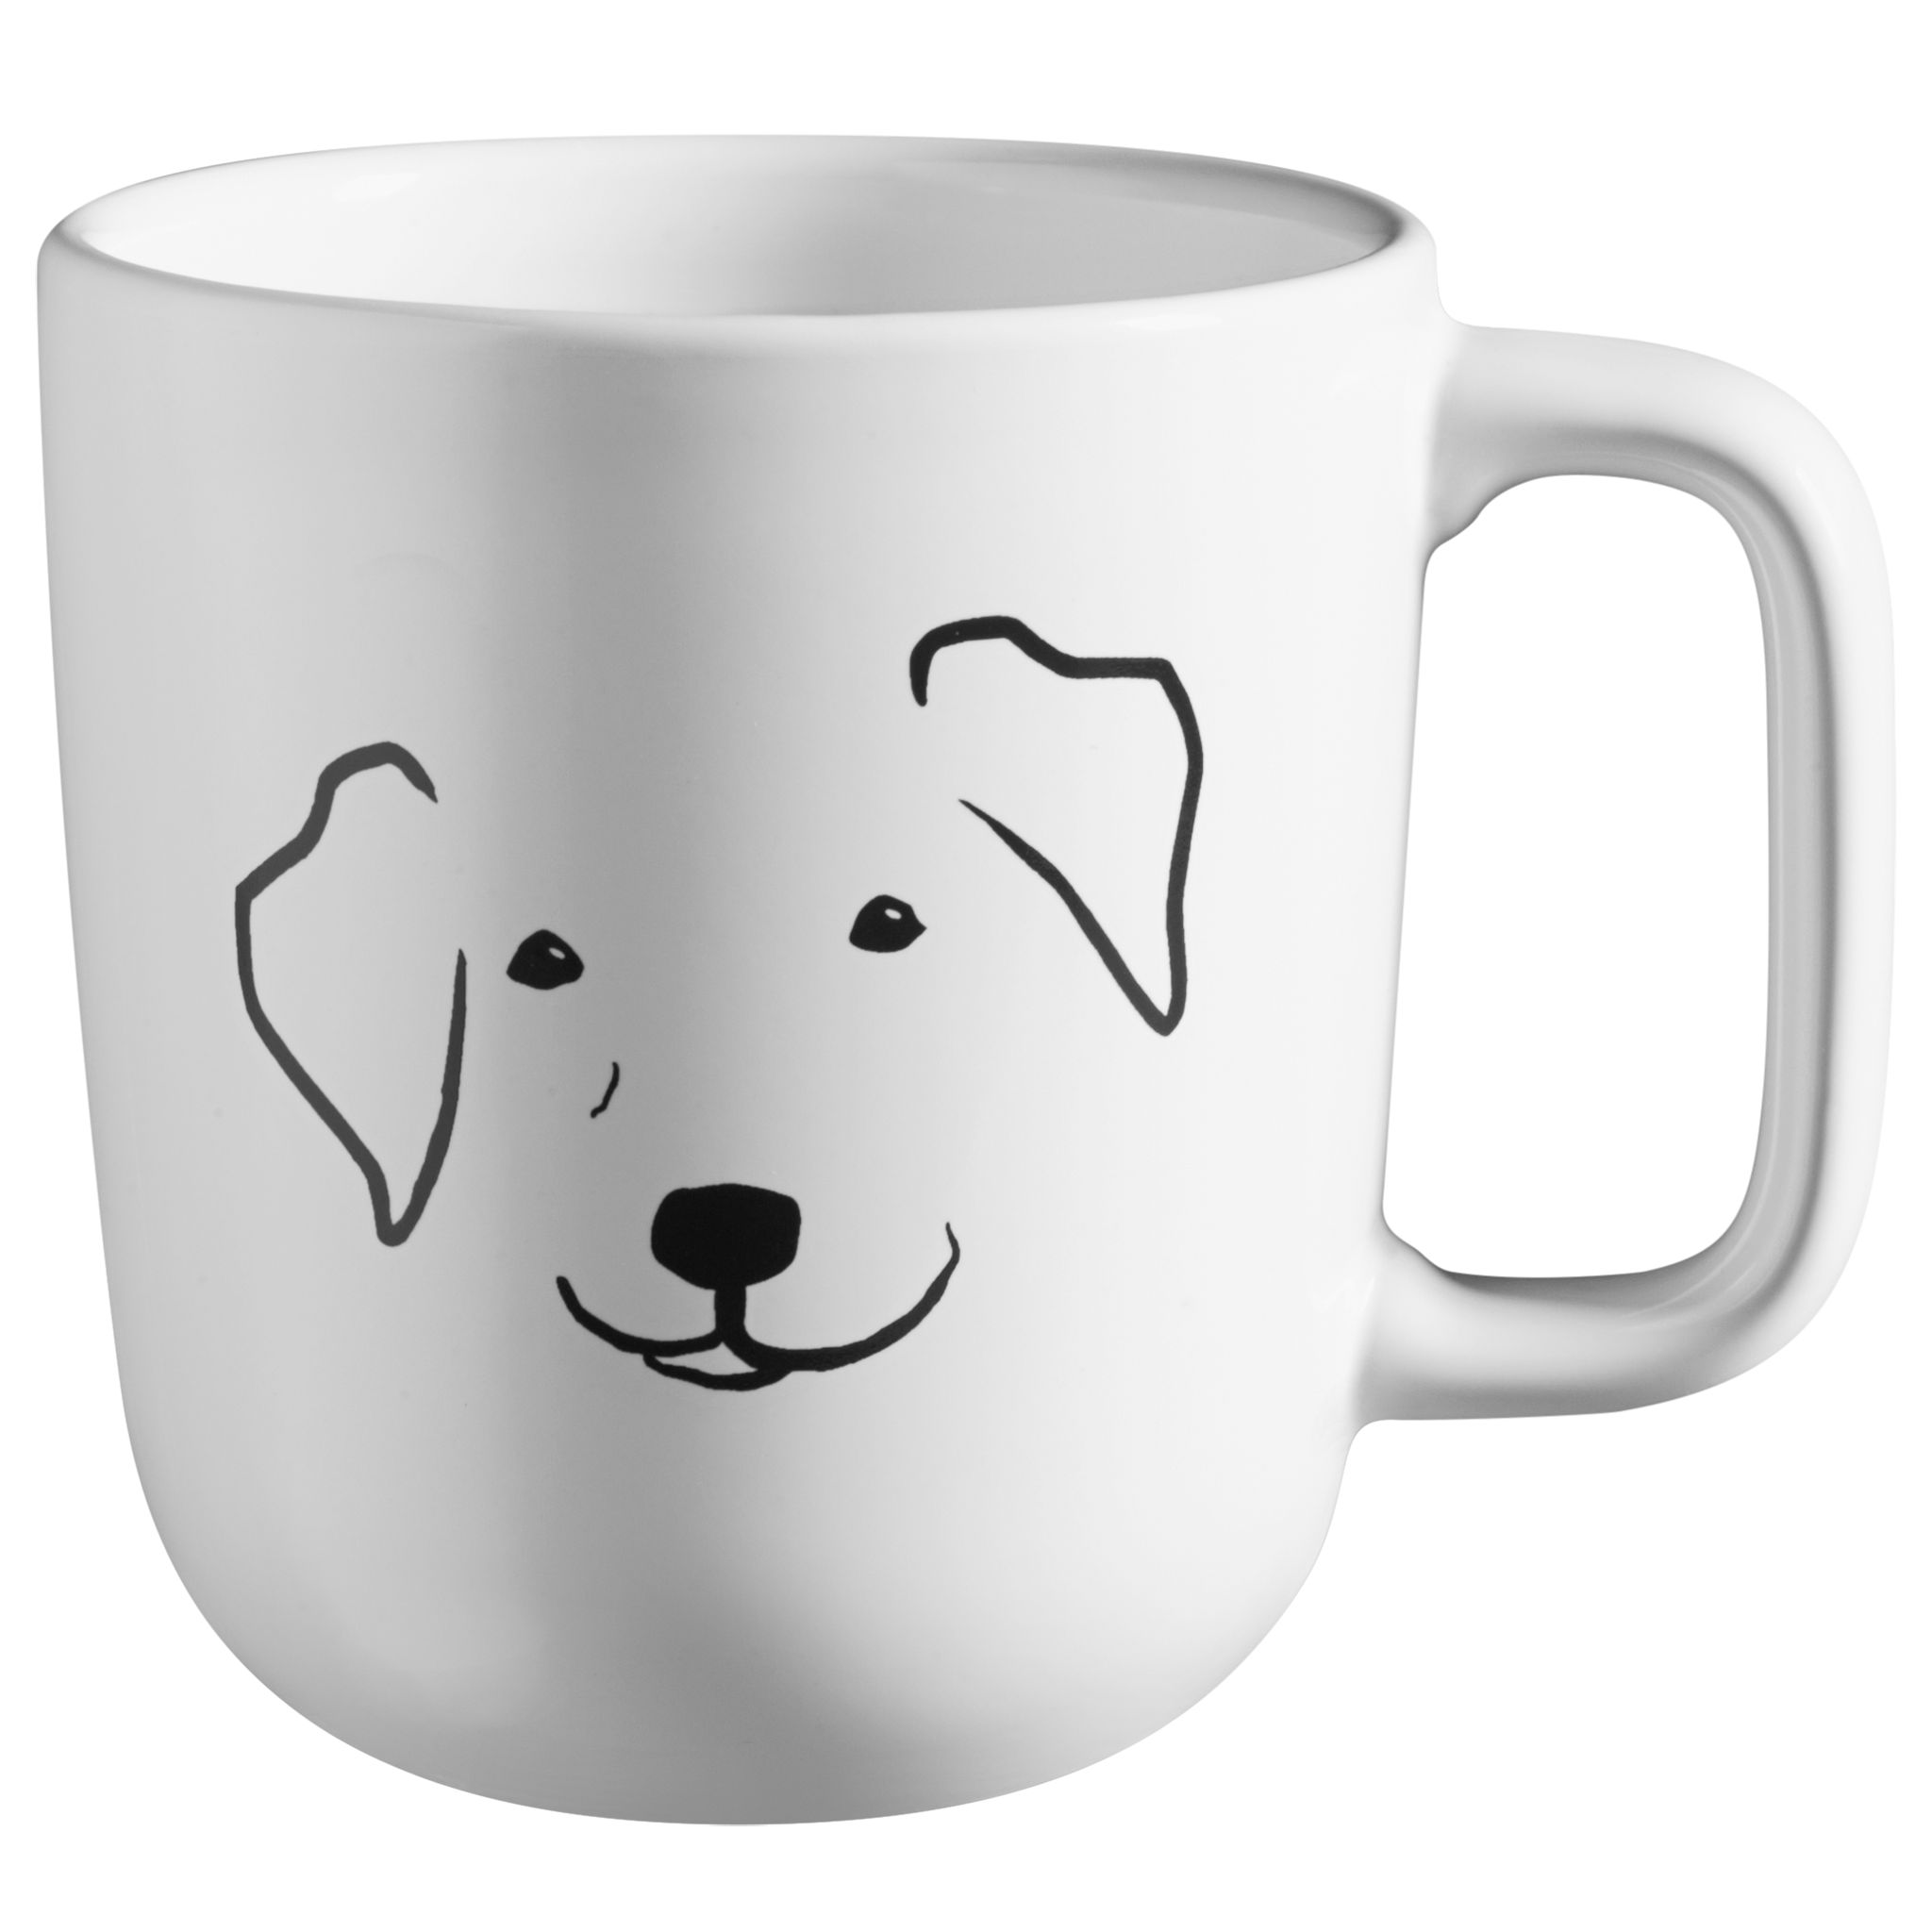 Corelle_Corelle_My_Best_Friend_12oz_Mug